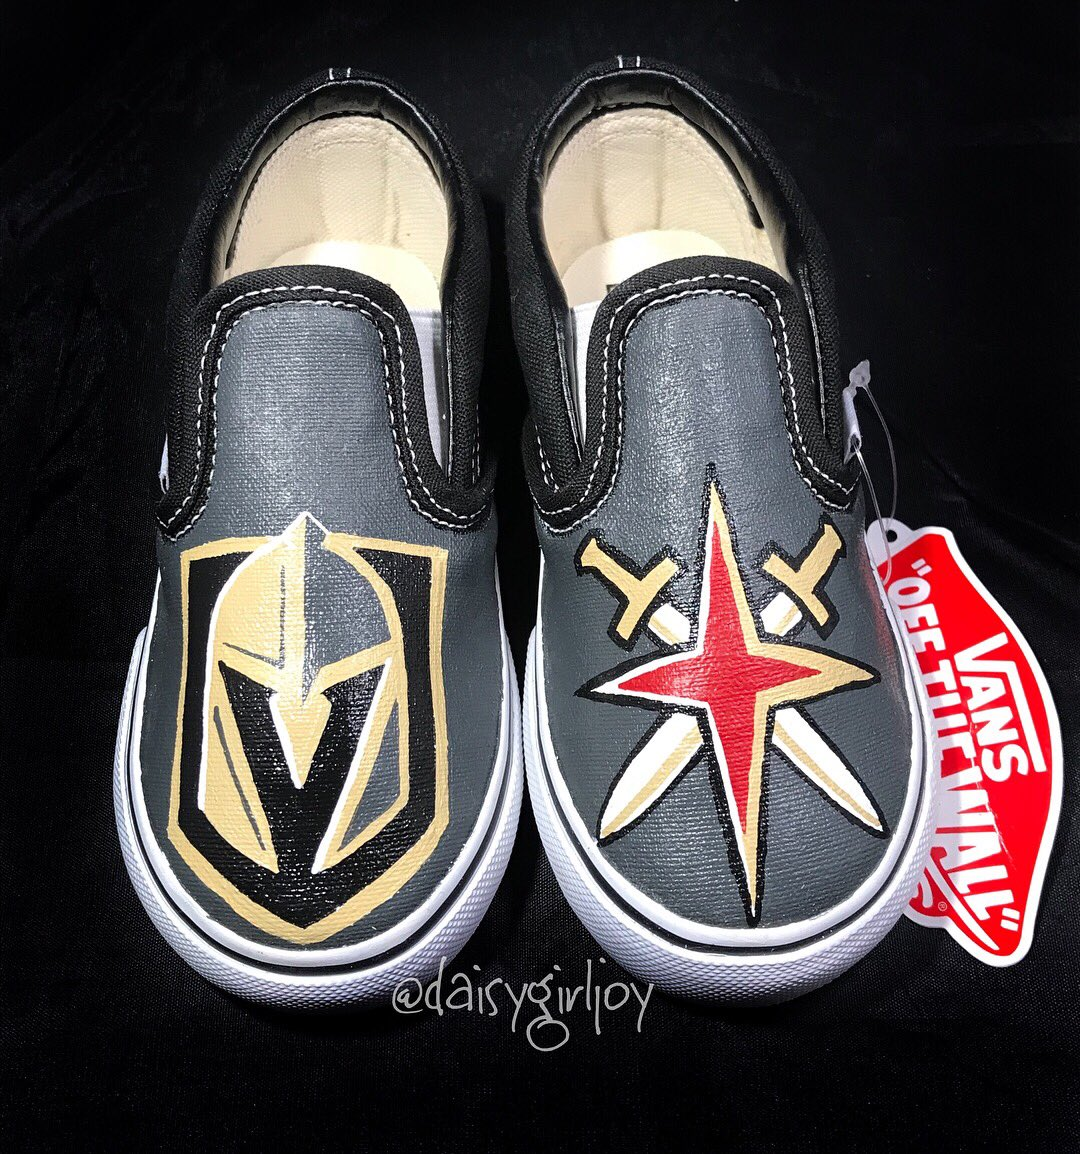 Las Vegas Golden Knights custom toddler shoes #lasvegasknights #lasvegas #vegasborn #lasvegasgoldenknights #customshoes #paintedvans #paintedshoes #angelusshoepolish #angelusdirect #nhl #teamspirit #stanleycup